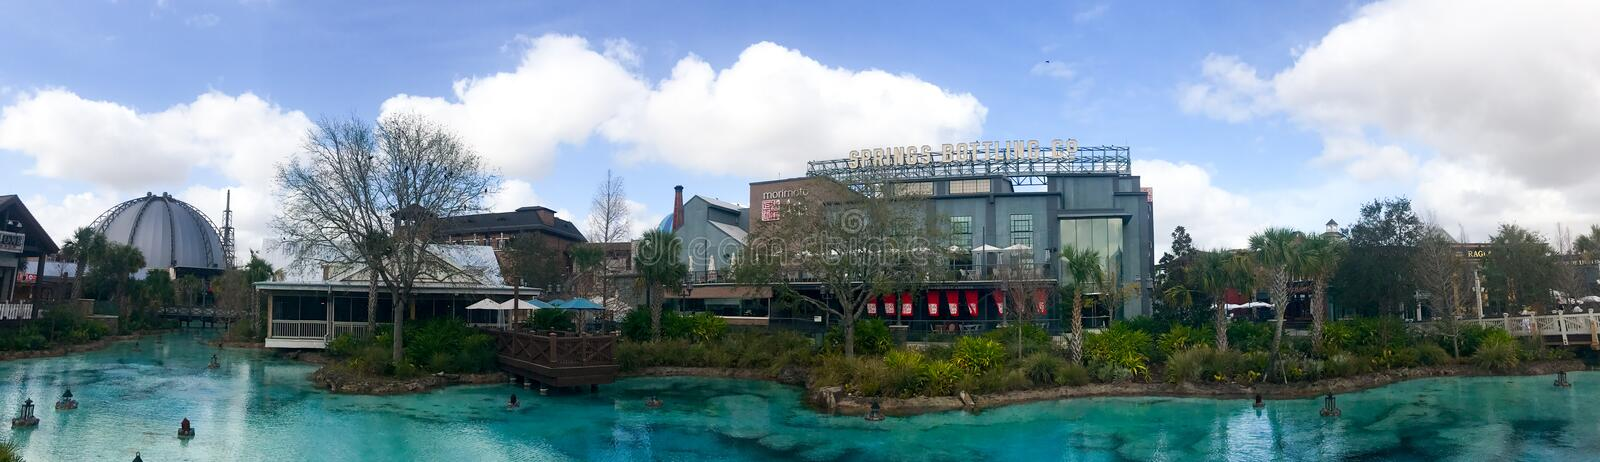 Panoramique des ressorts de Disney, Orlando, la Floride photo stock